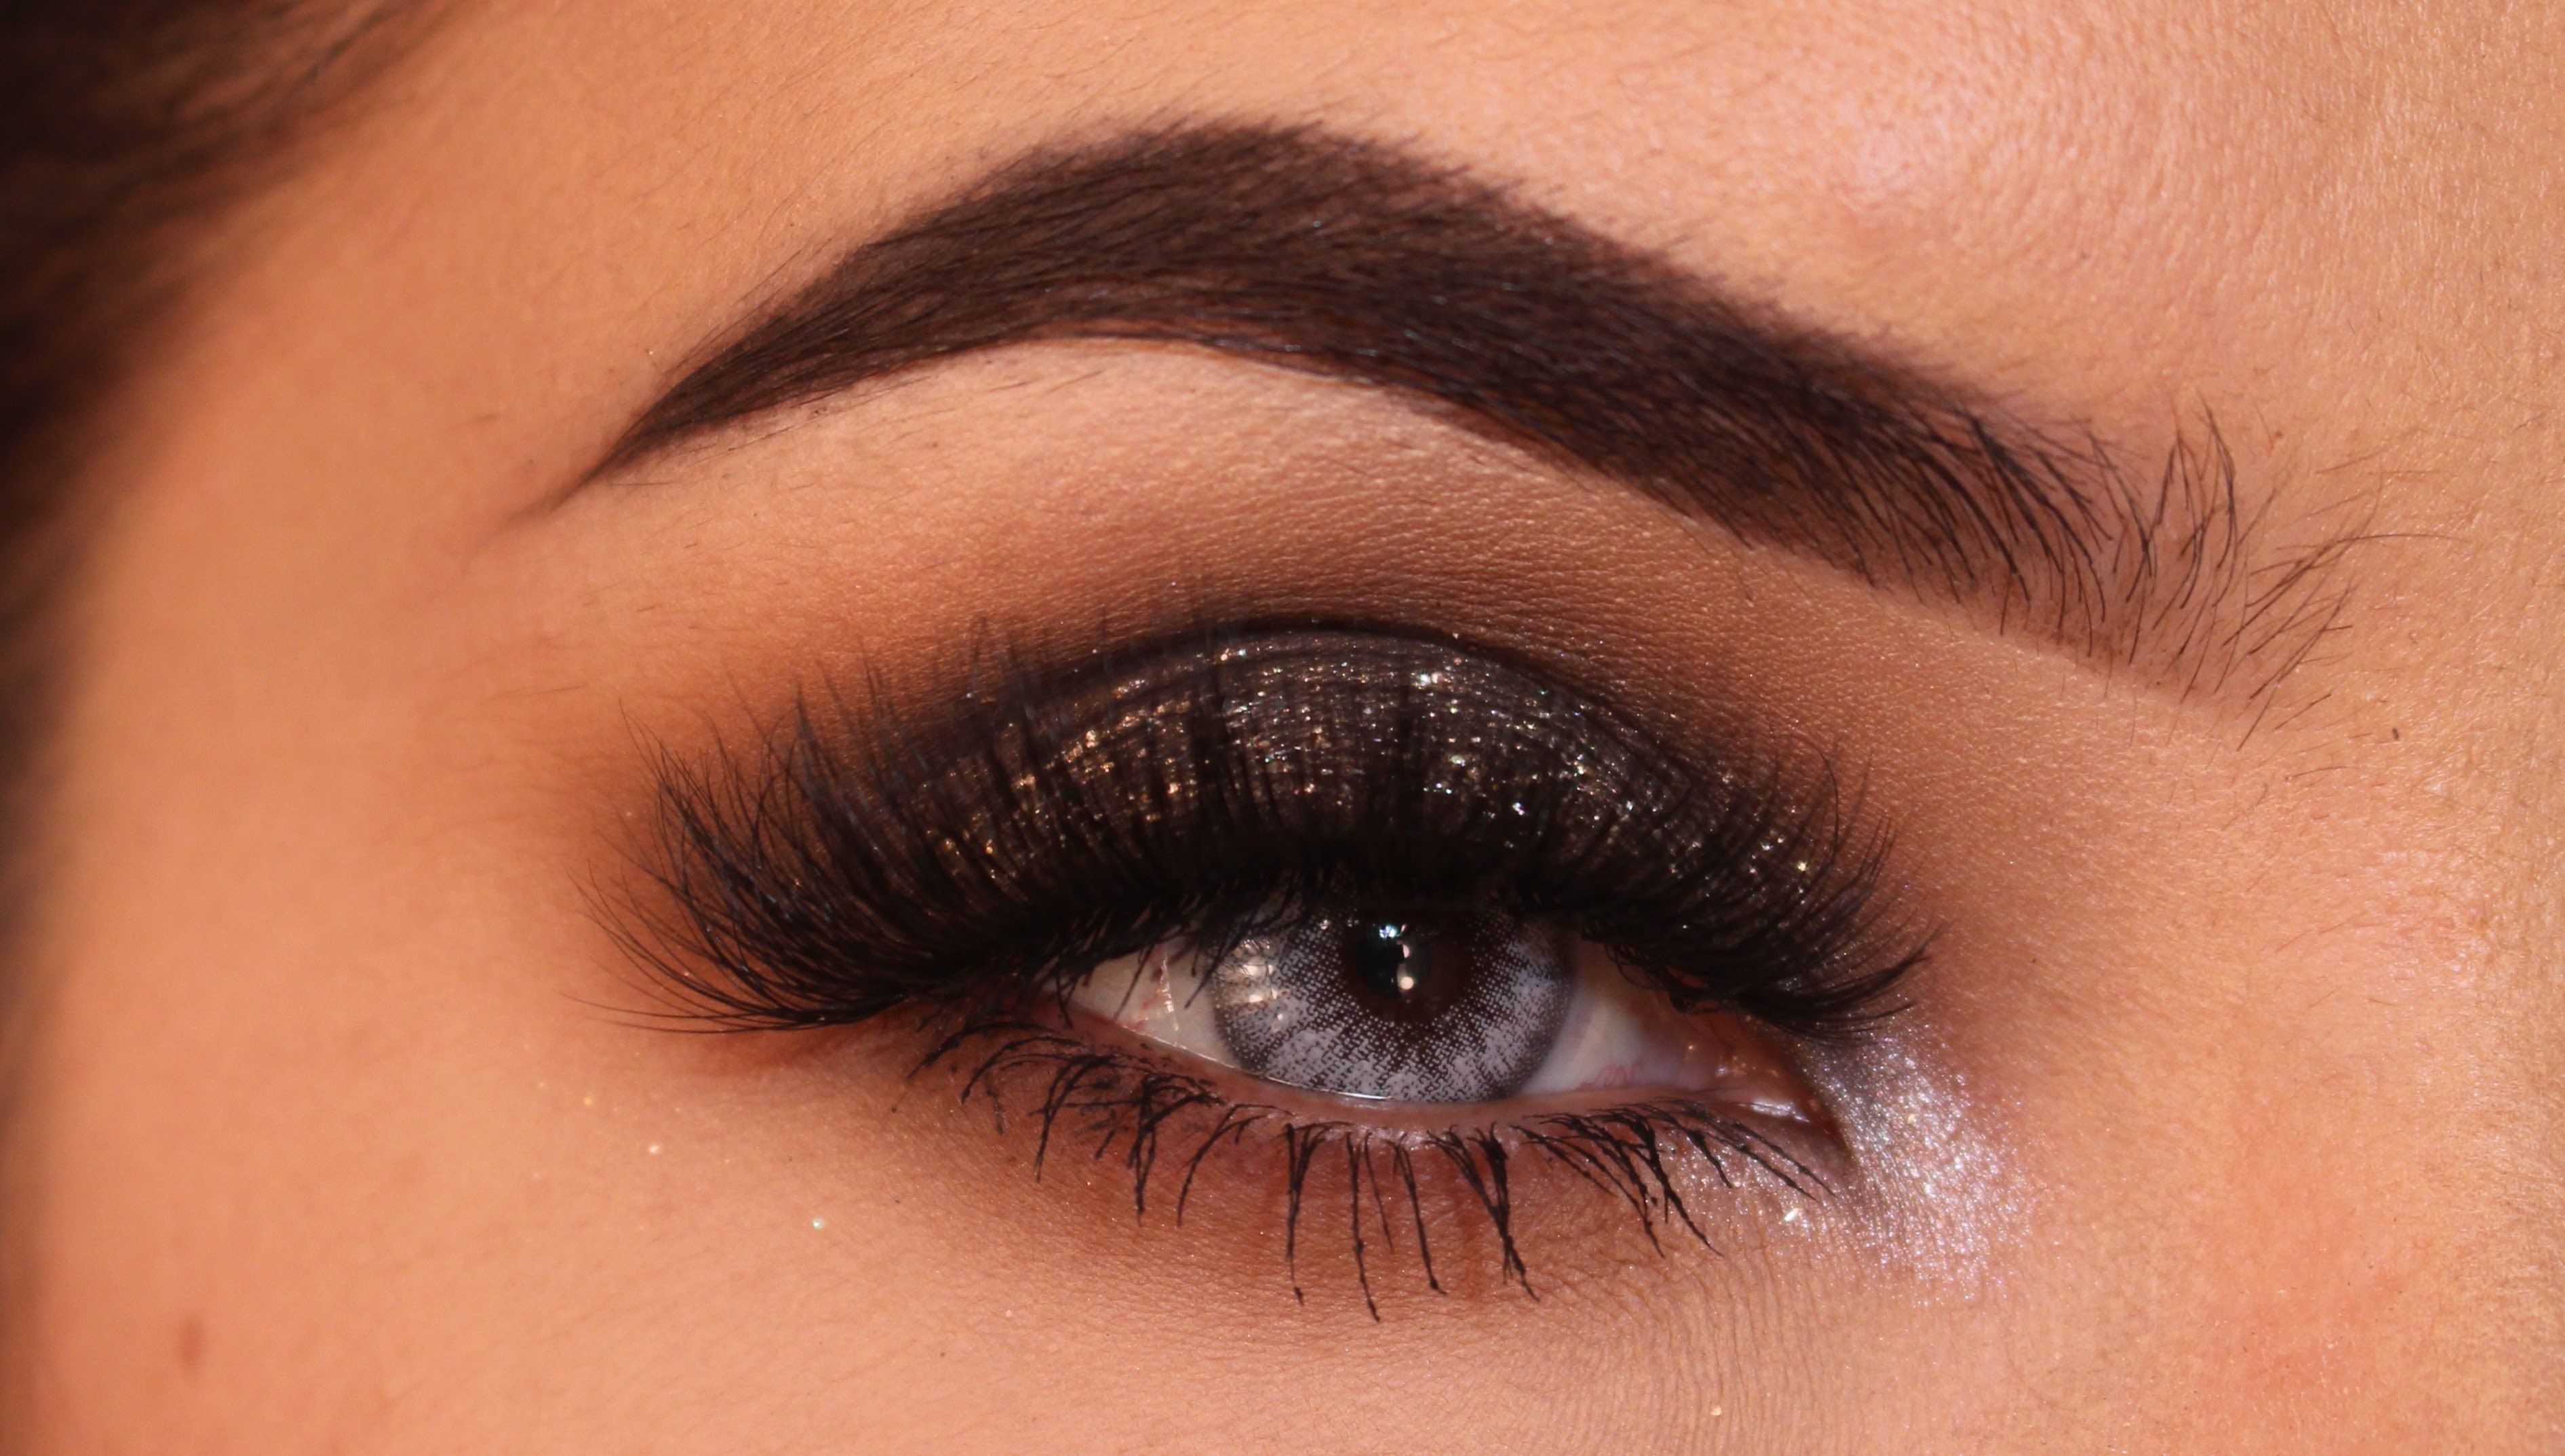 Party Makeup: Brown Smokey Eye With Glitter Tutorial